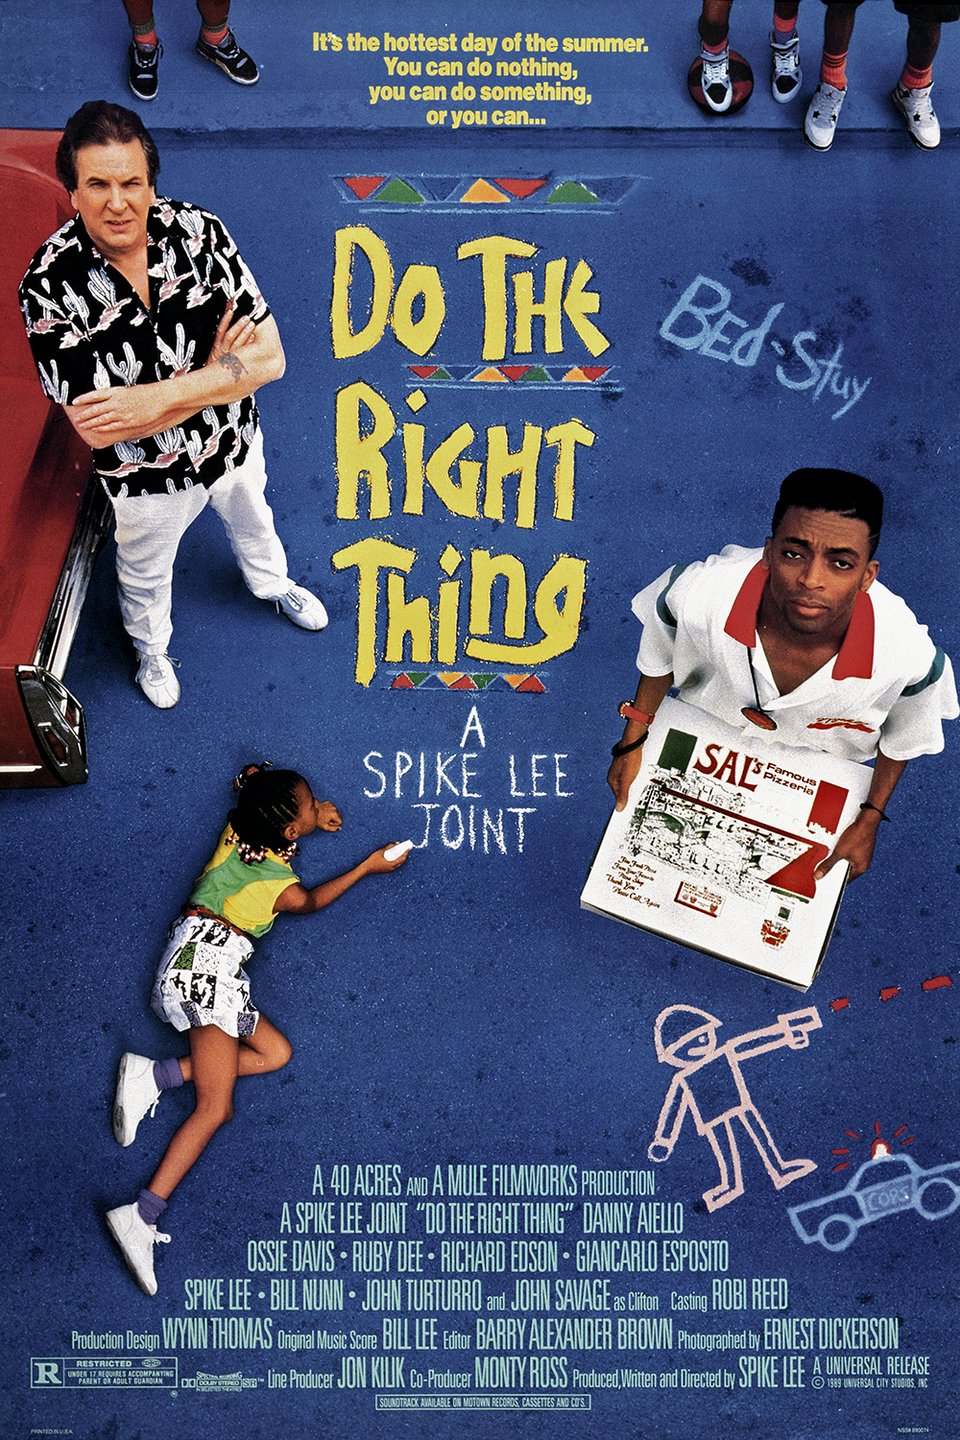 <p>Fun fact: Barack and Michelle Obama's first date was a screening of <em>Do the Right Thing</em>. </p>